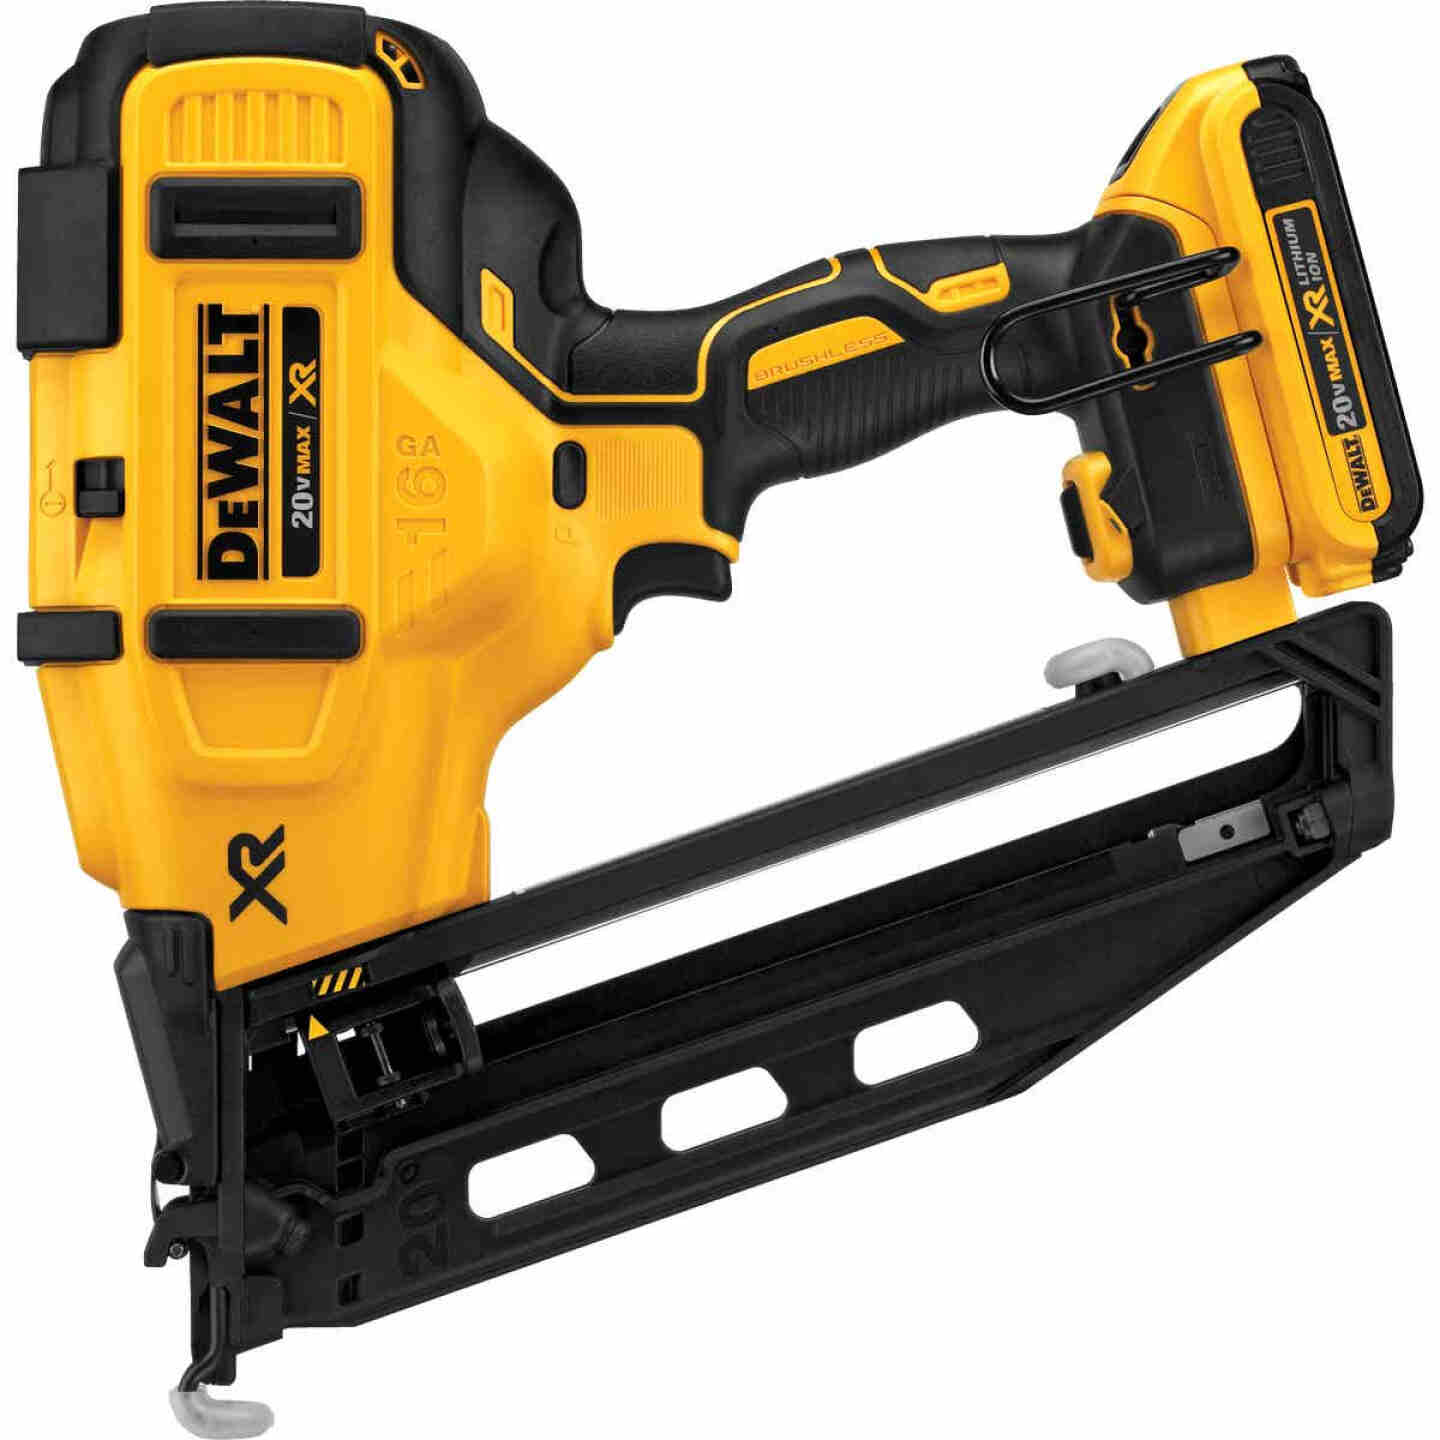 DeWalt 20 Volt MAX XR Lithium-Ion 16-Gauge 2-1/2 In. Angled Cordless Finish Nailer Kit Image 7